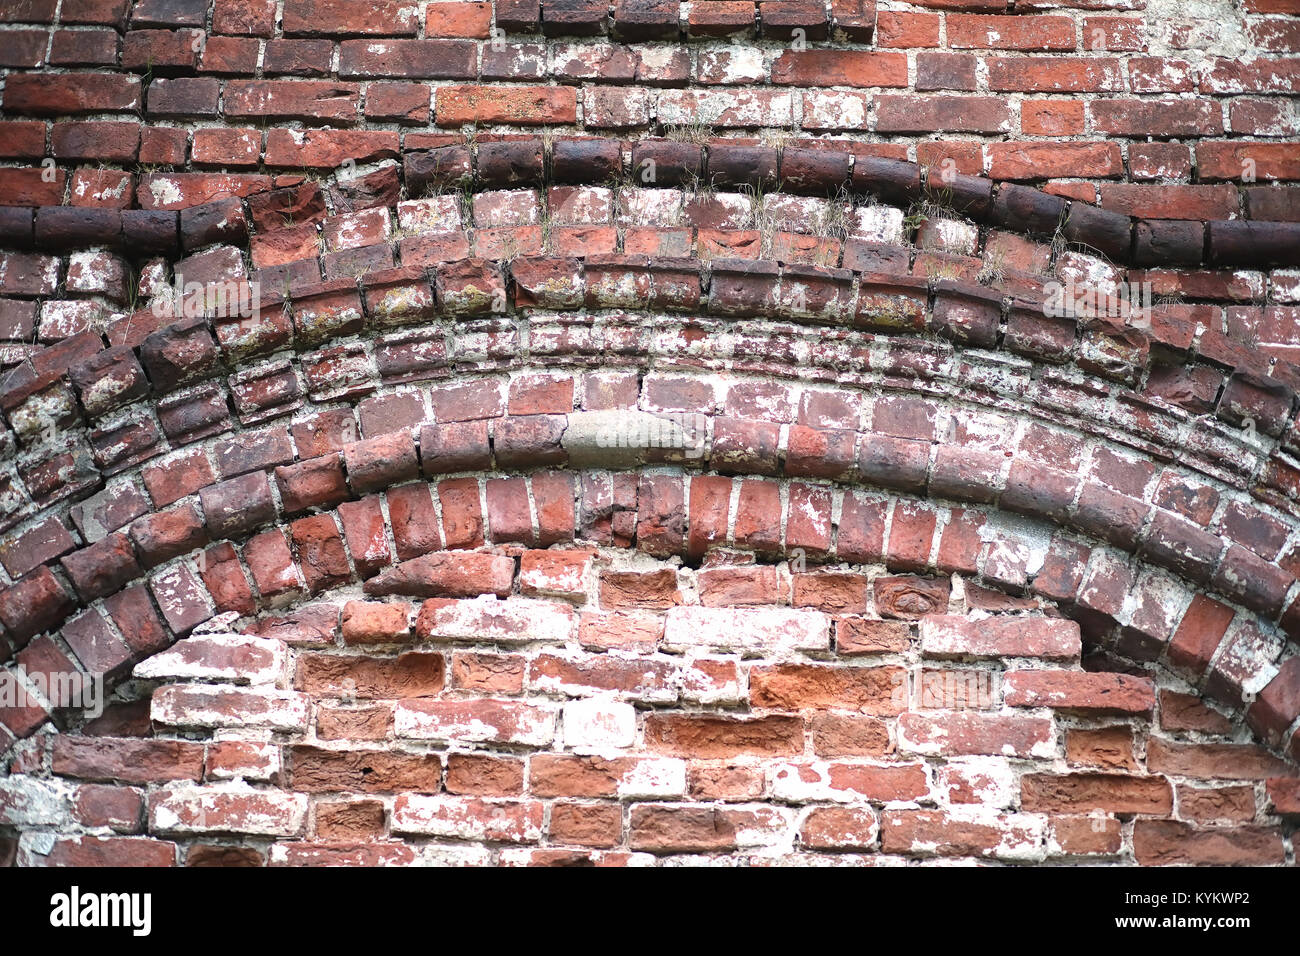 Old Brick Wall With White And Red Bricks Stock Photos